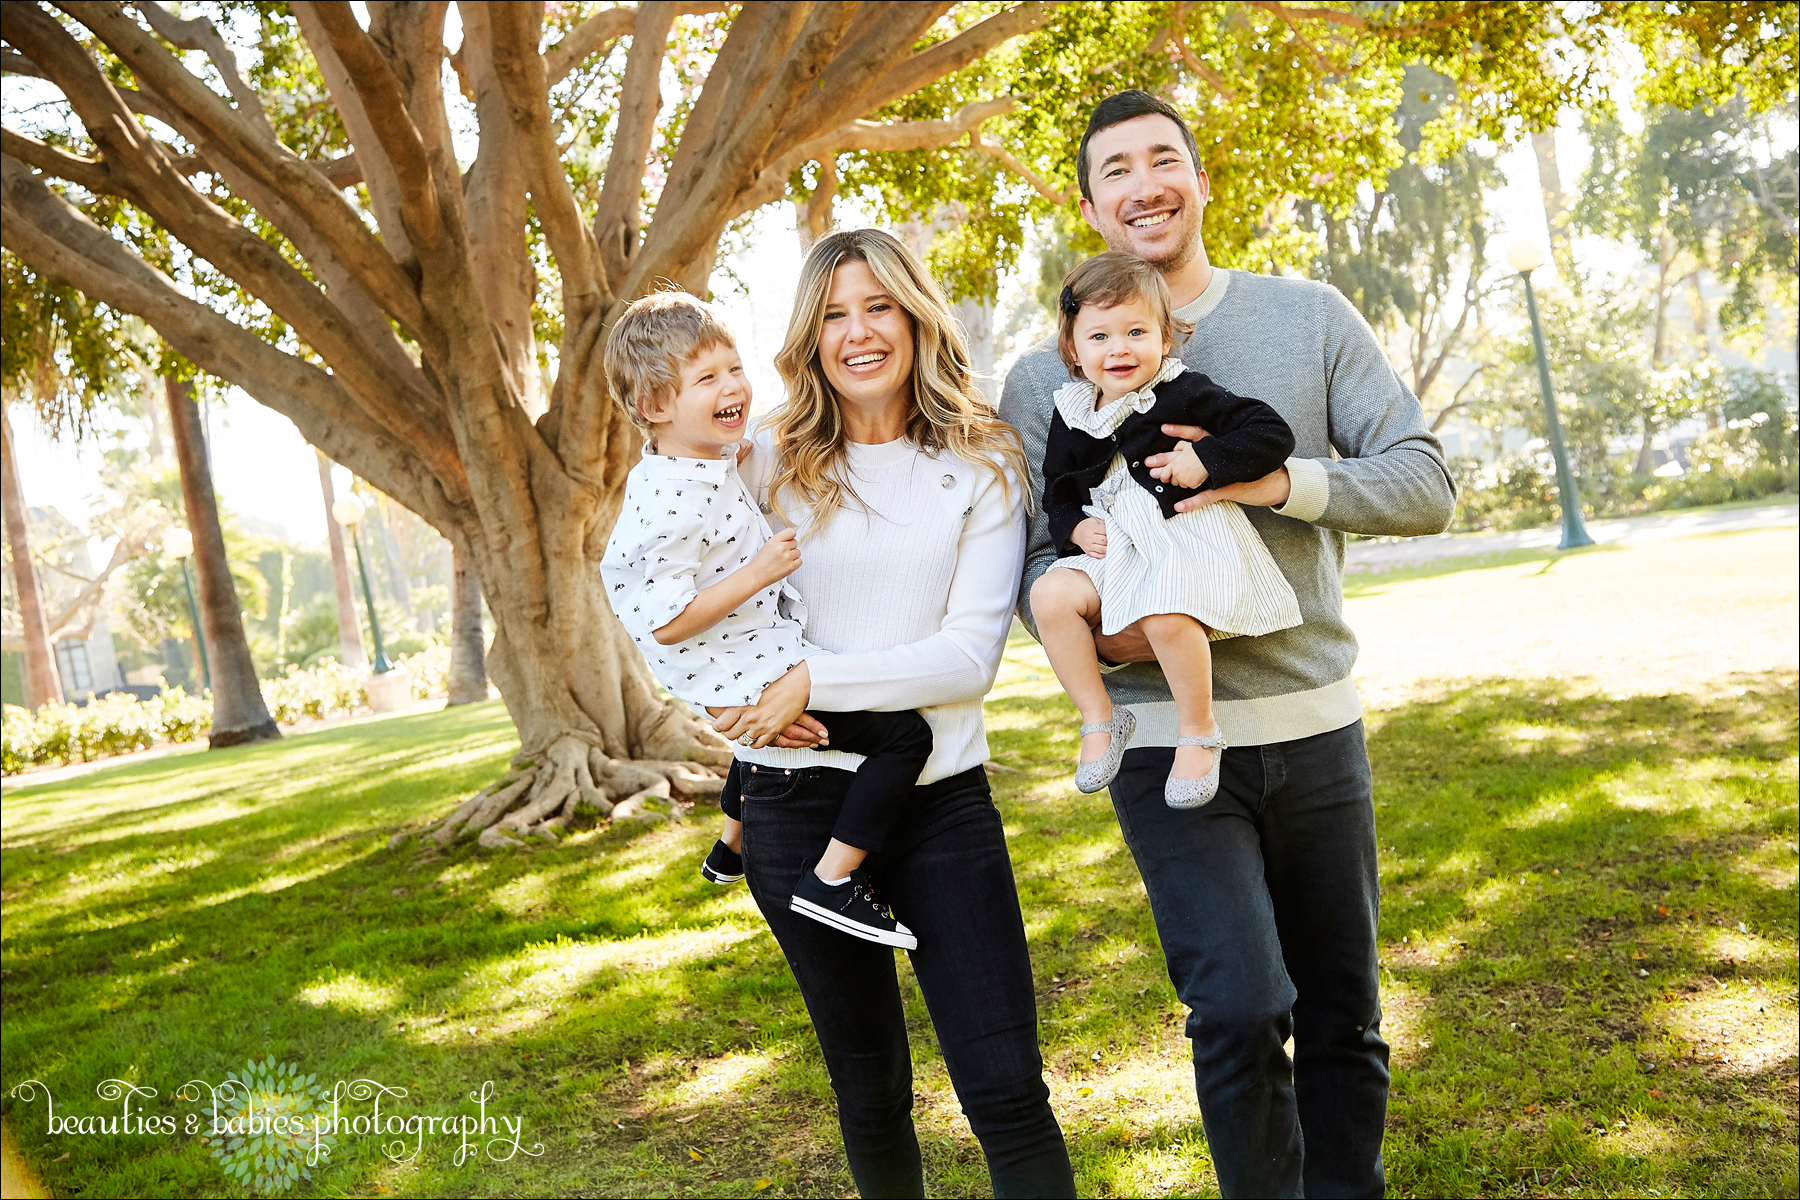 Los Angeles family and children's photographer holiday card mini session photography outdoors natural light